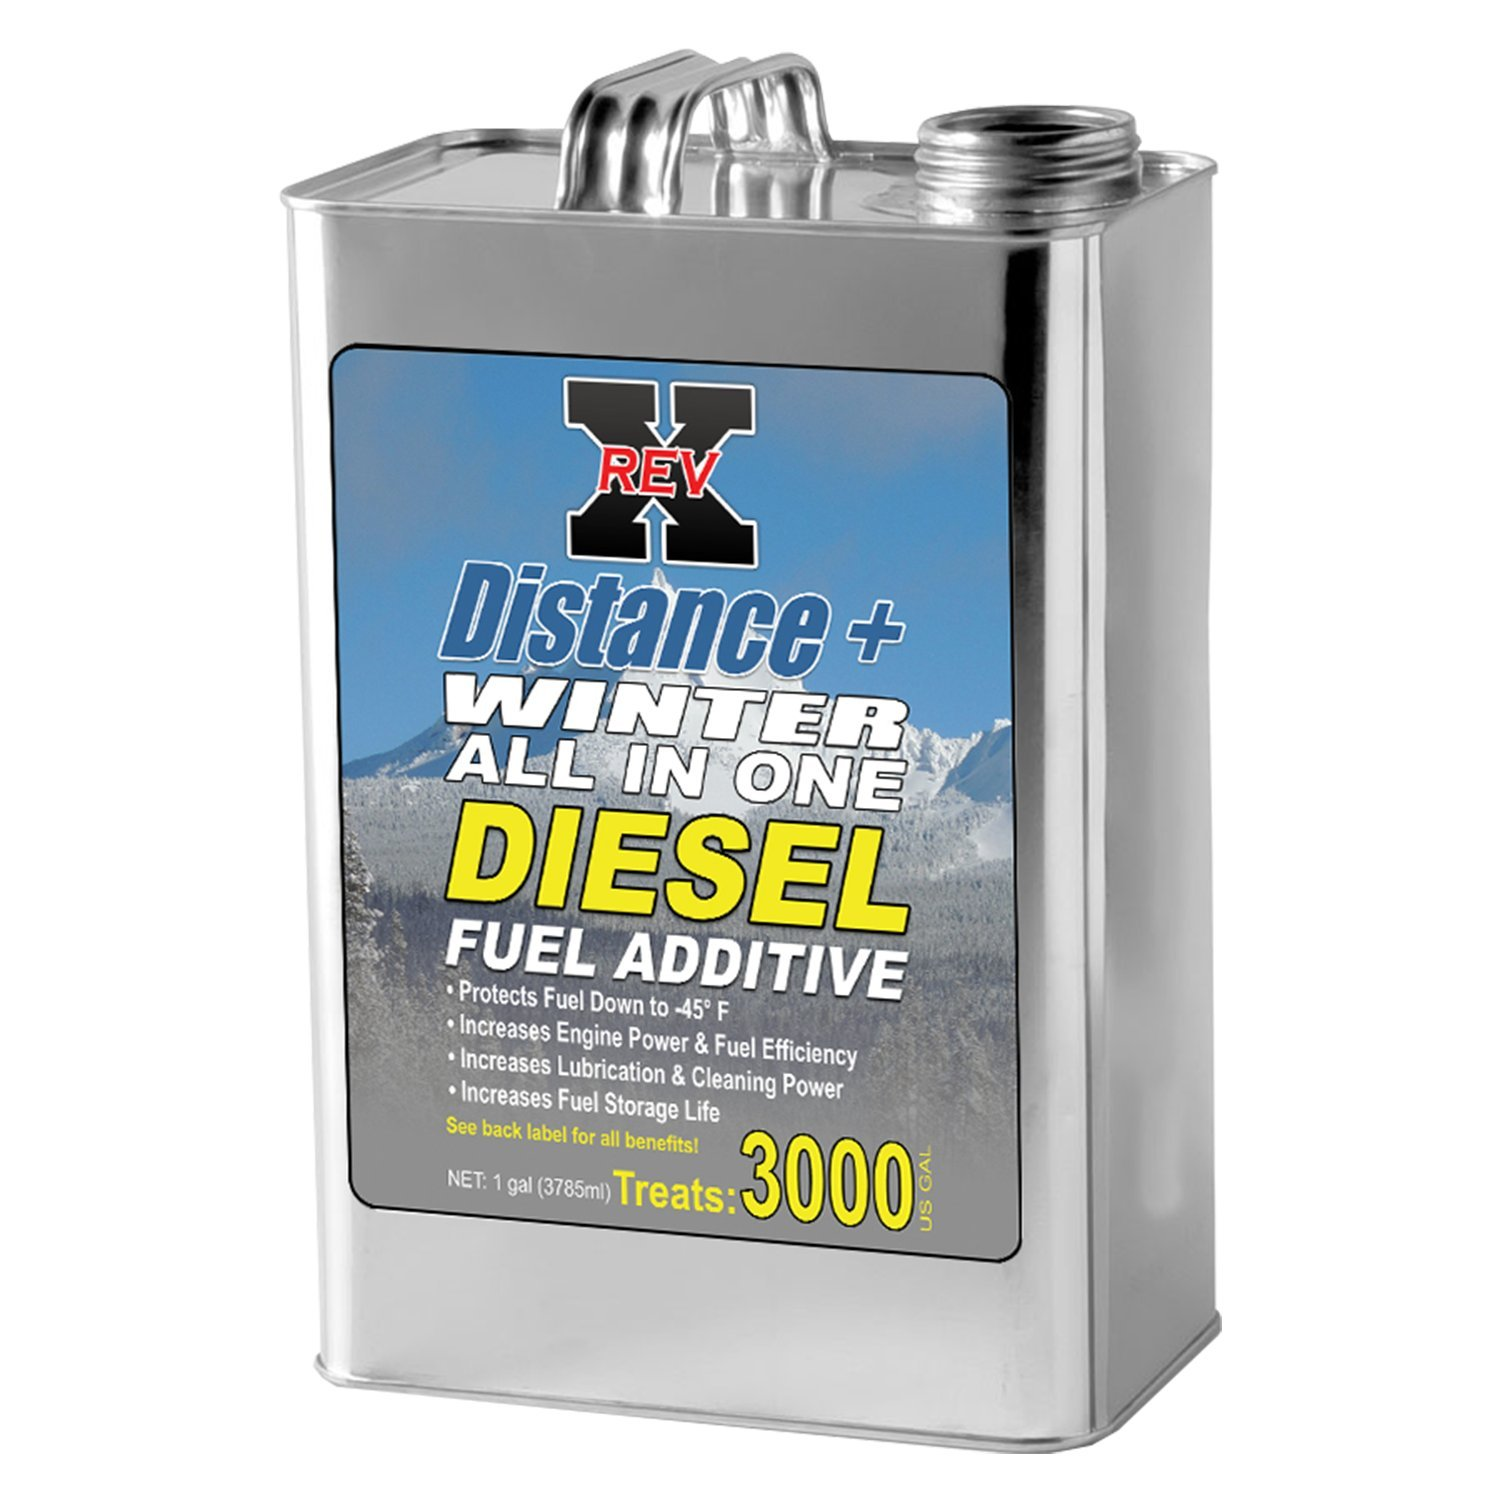 REV X Distance+ Winter Diesel Fuel Additive (-45°) - 1 Gallon Treats 3000 Gallons by REV-X